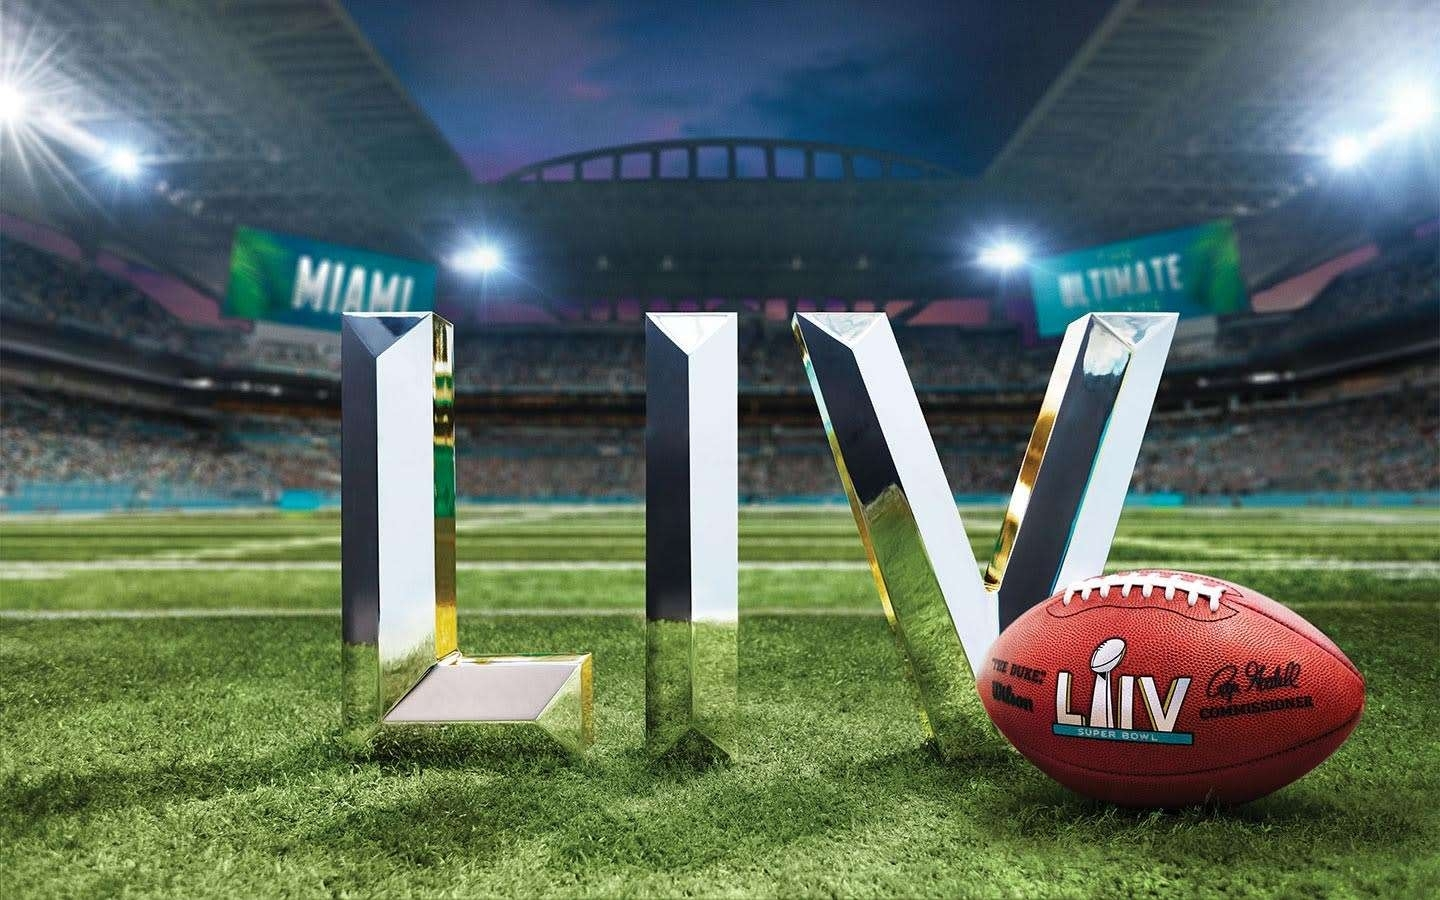 Super Bowl Liv - Now-02/02/20 intended for Super Bowl Played In Miami